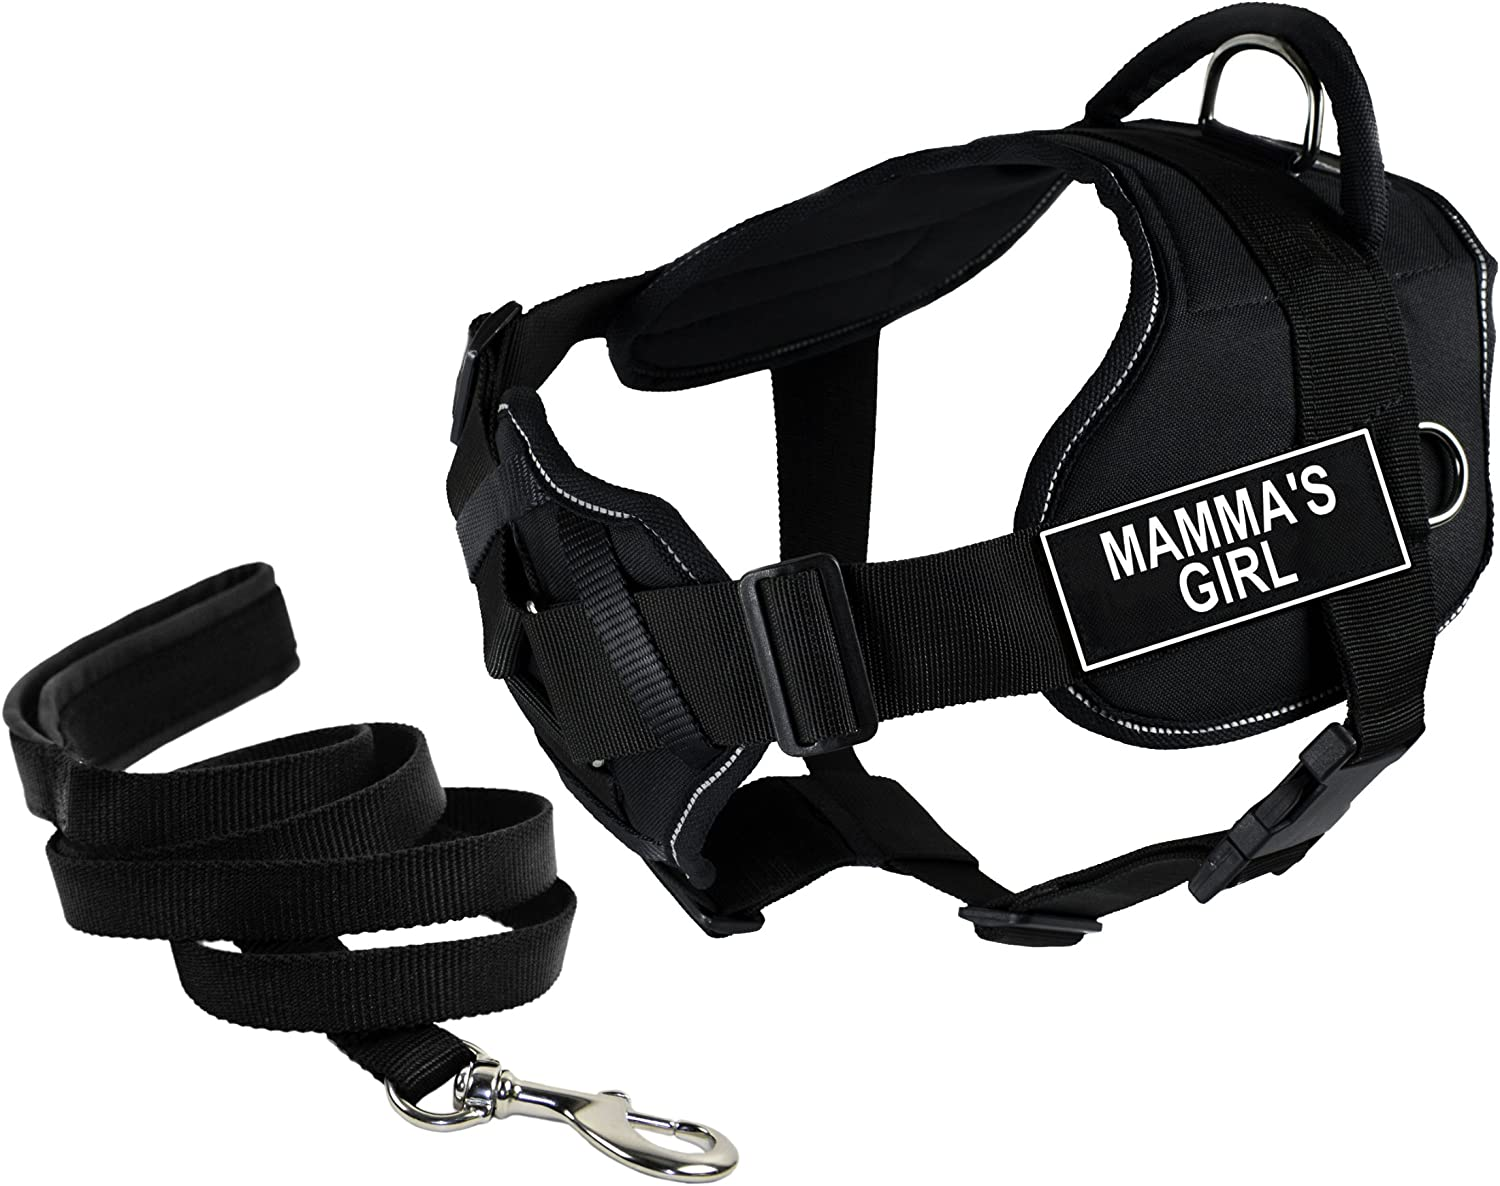 Dean & Tyler's DT Fun Chest Support MAMMA'S GIRL Harness with Reflective Trim, Small, and 6 ft Padded Puppy Leash.